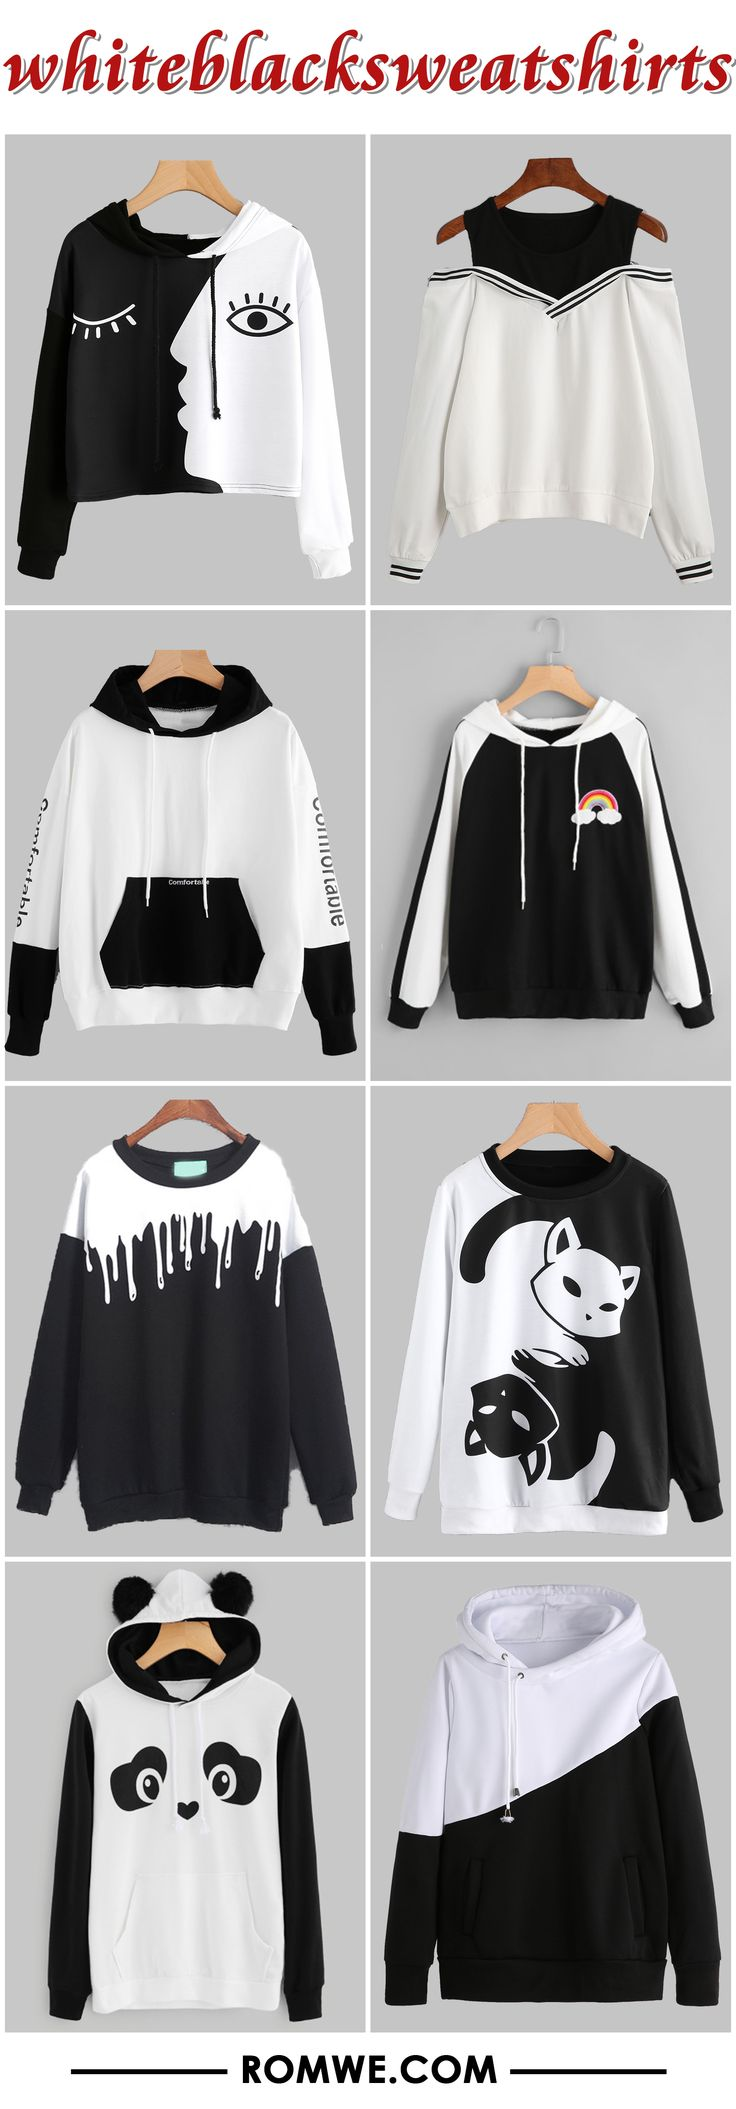 white black sweatshirts from romwe.com